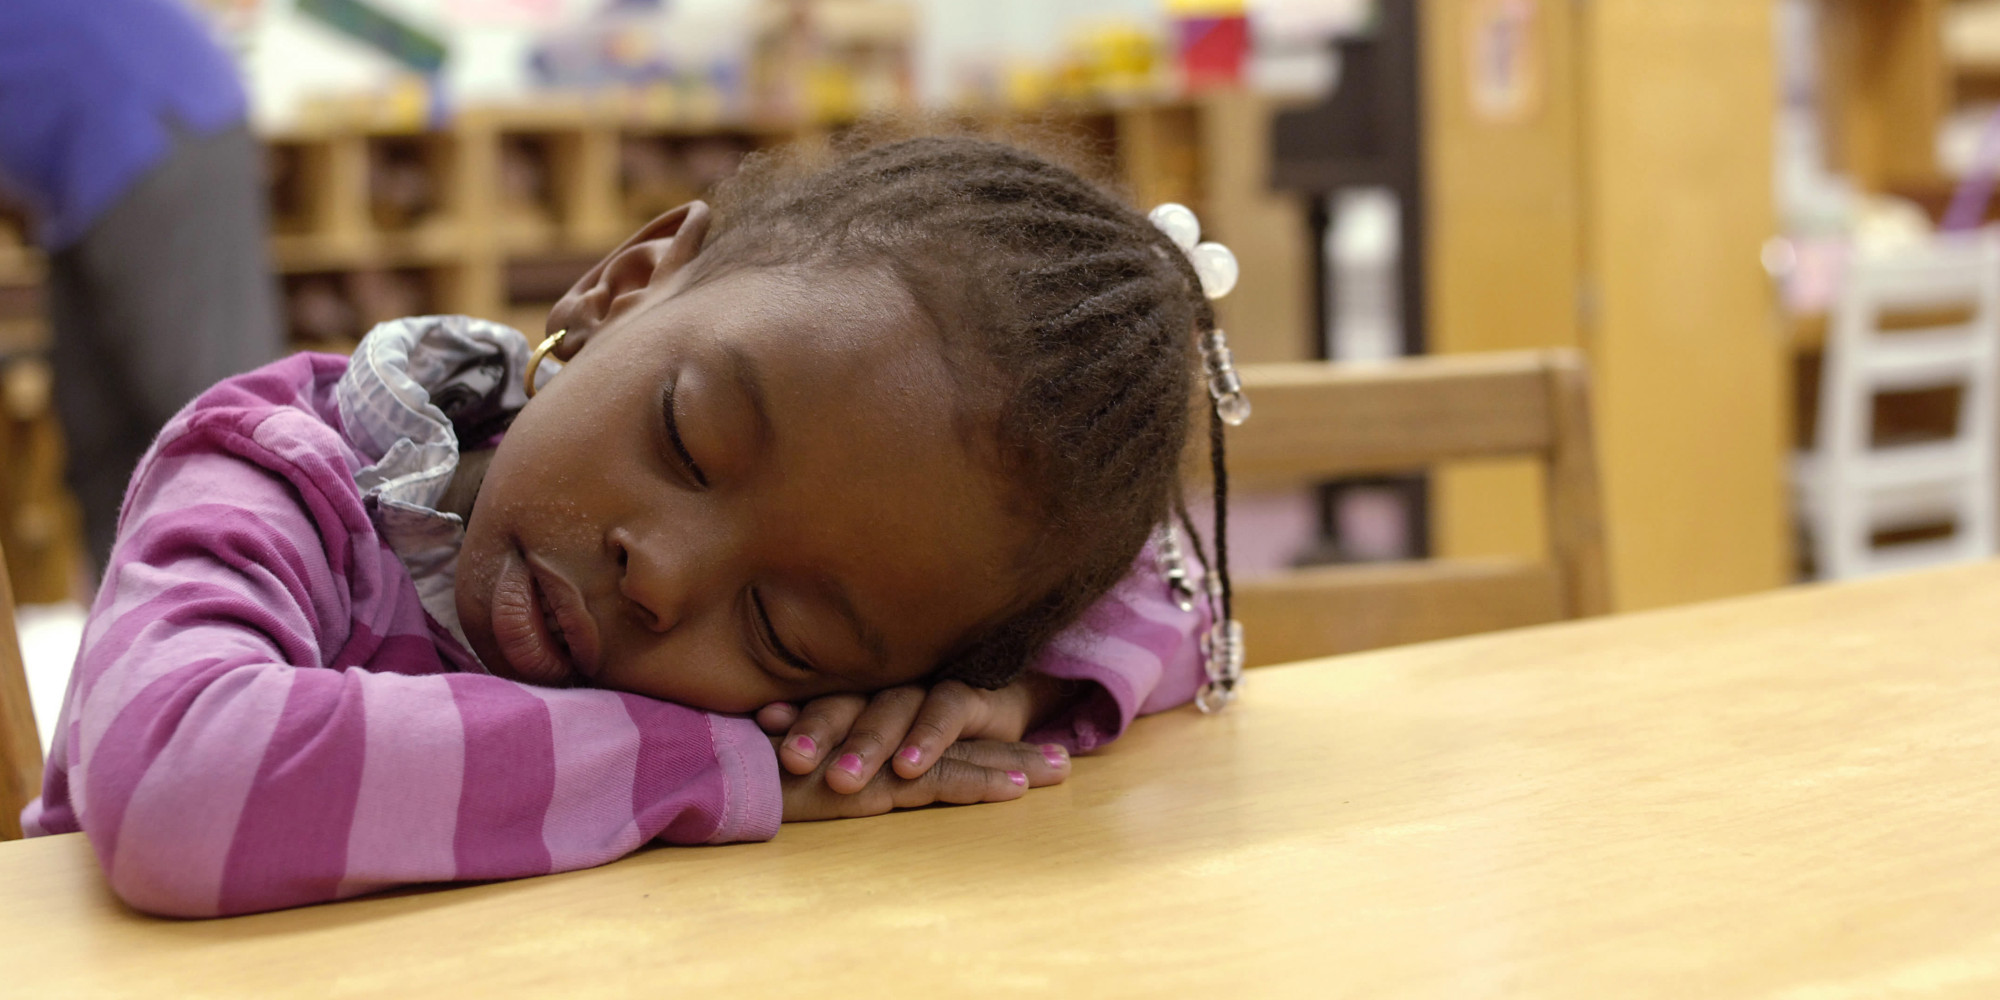 Naps During School? For Preschoolers, Yes | HuffPost